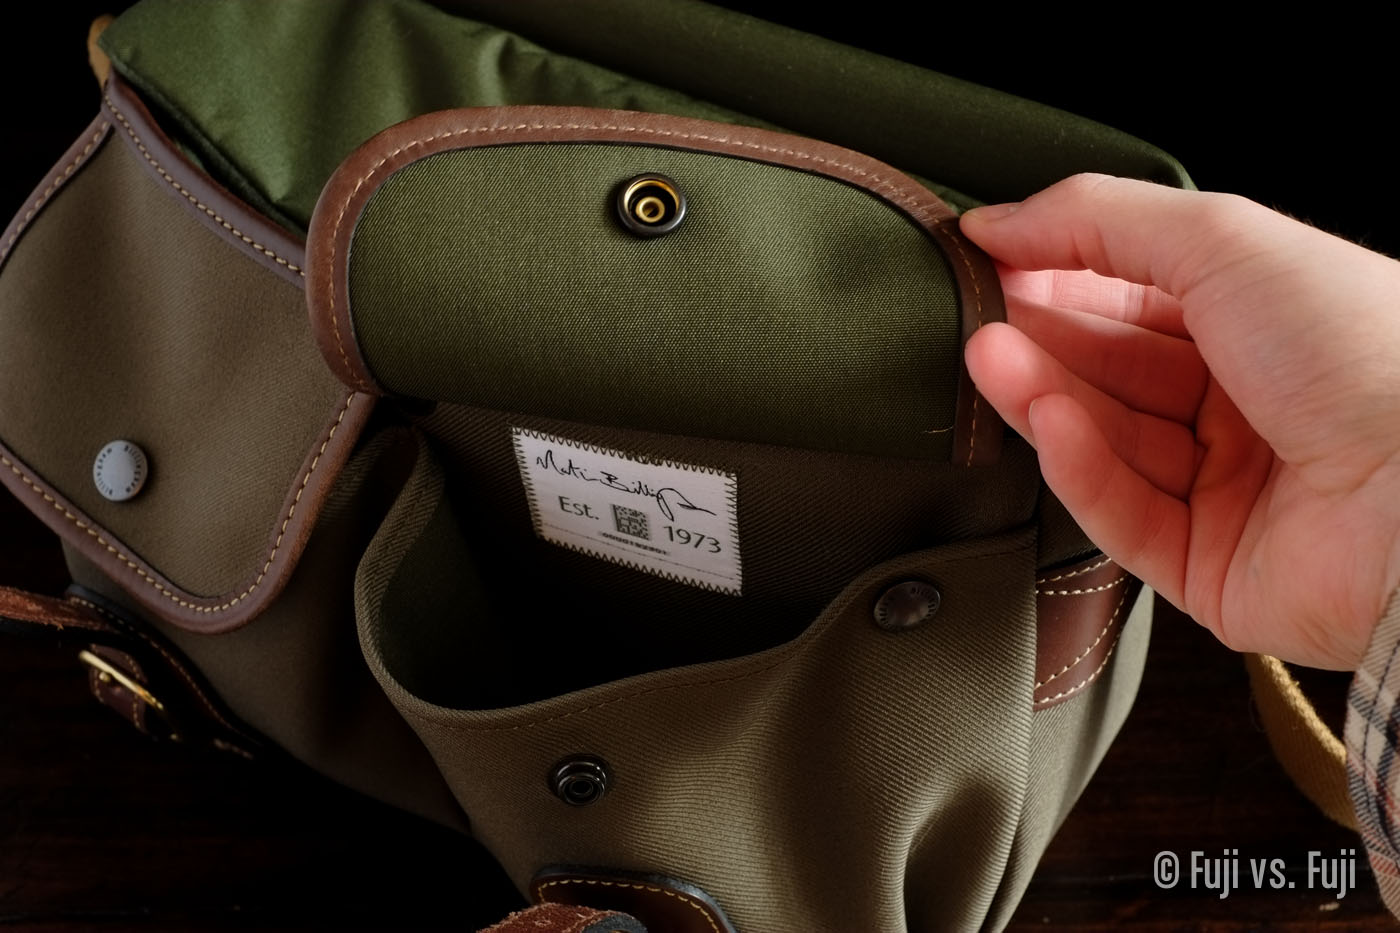 Two useful, expandable front pouches